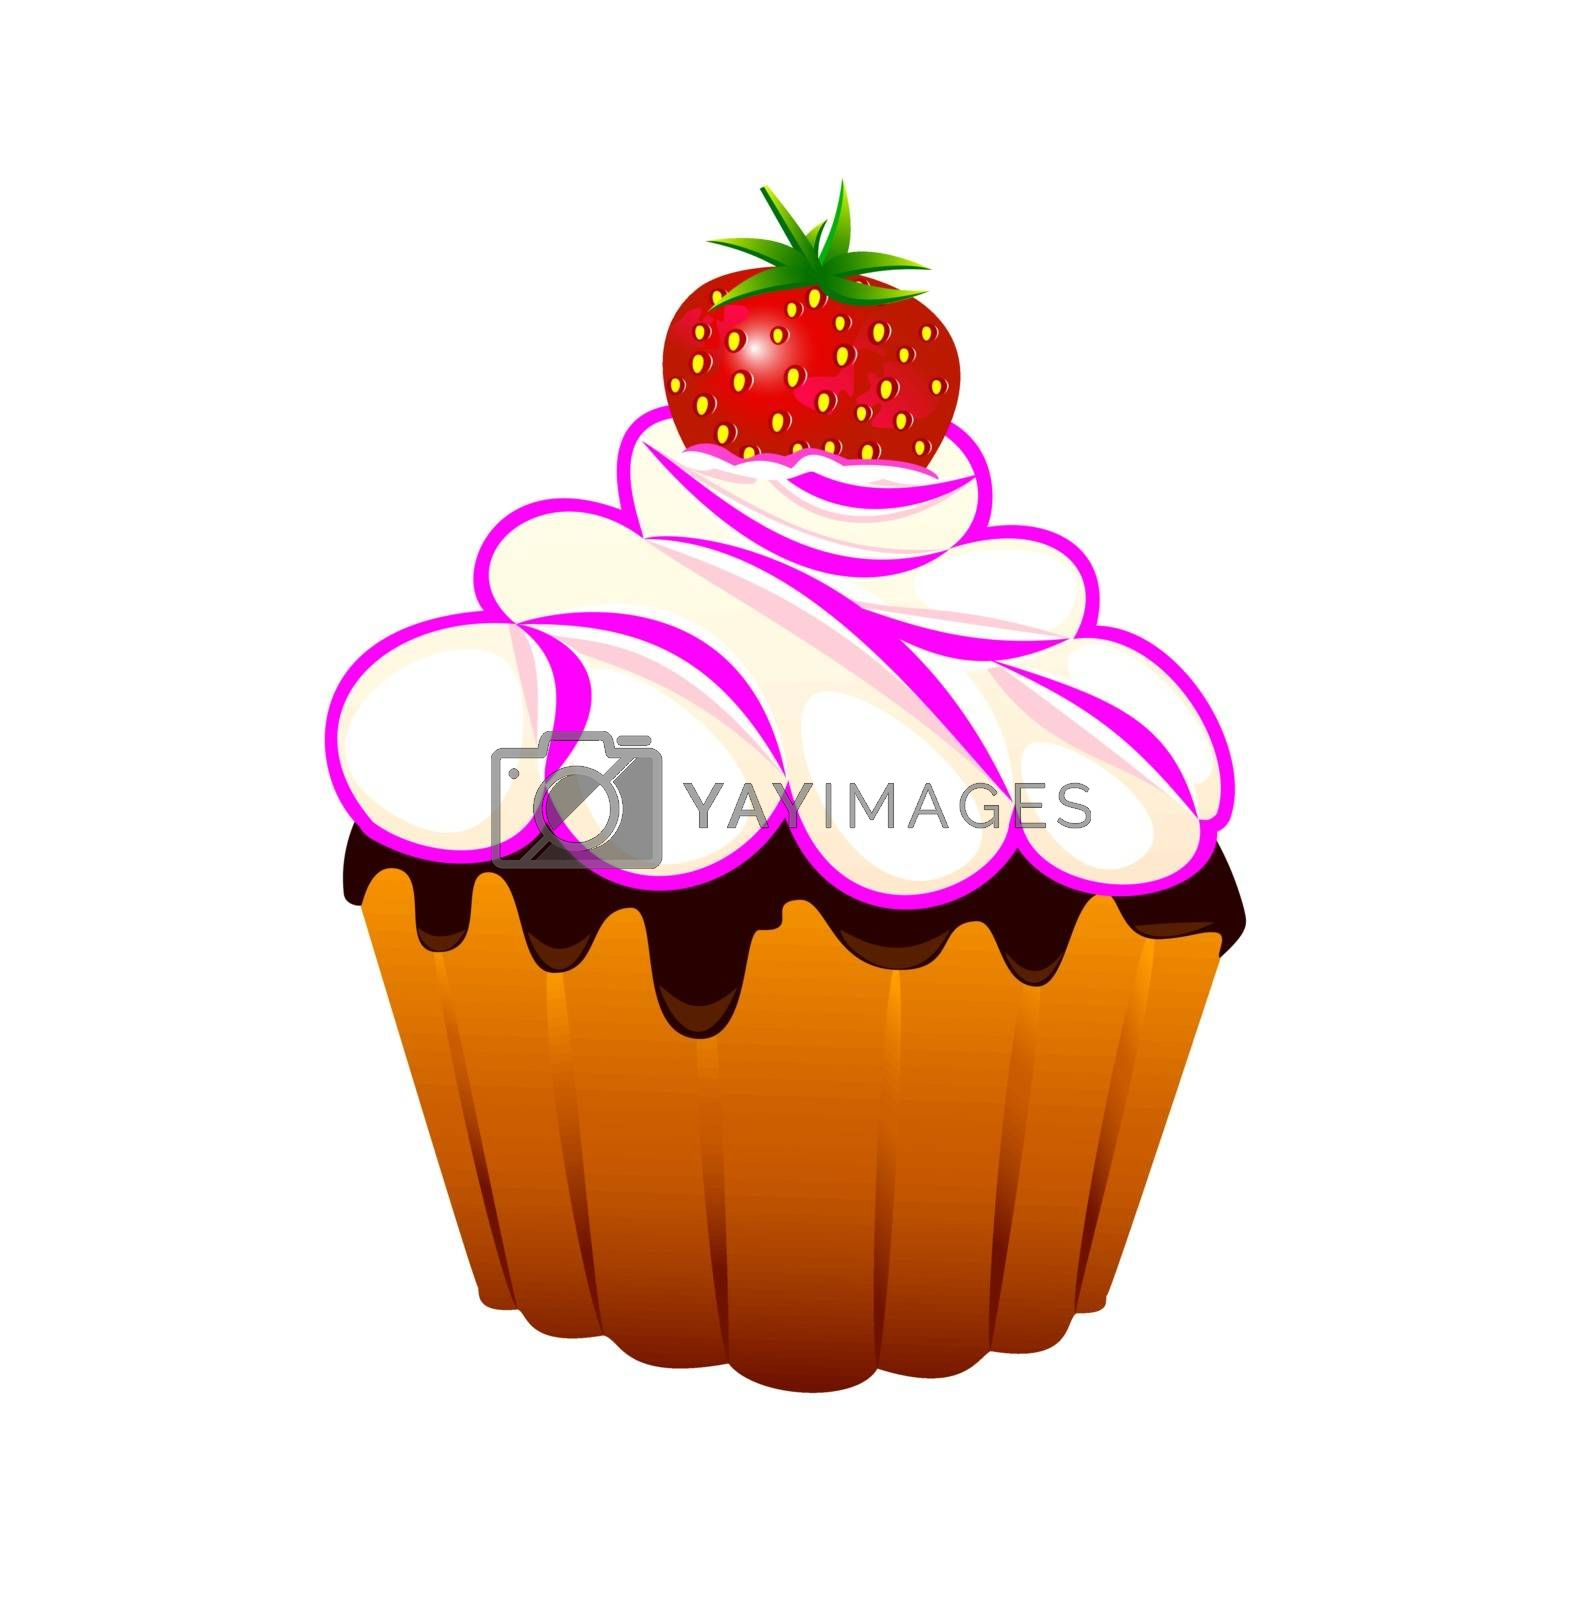 Cupcake with strawberries and cream on a white background.